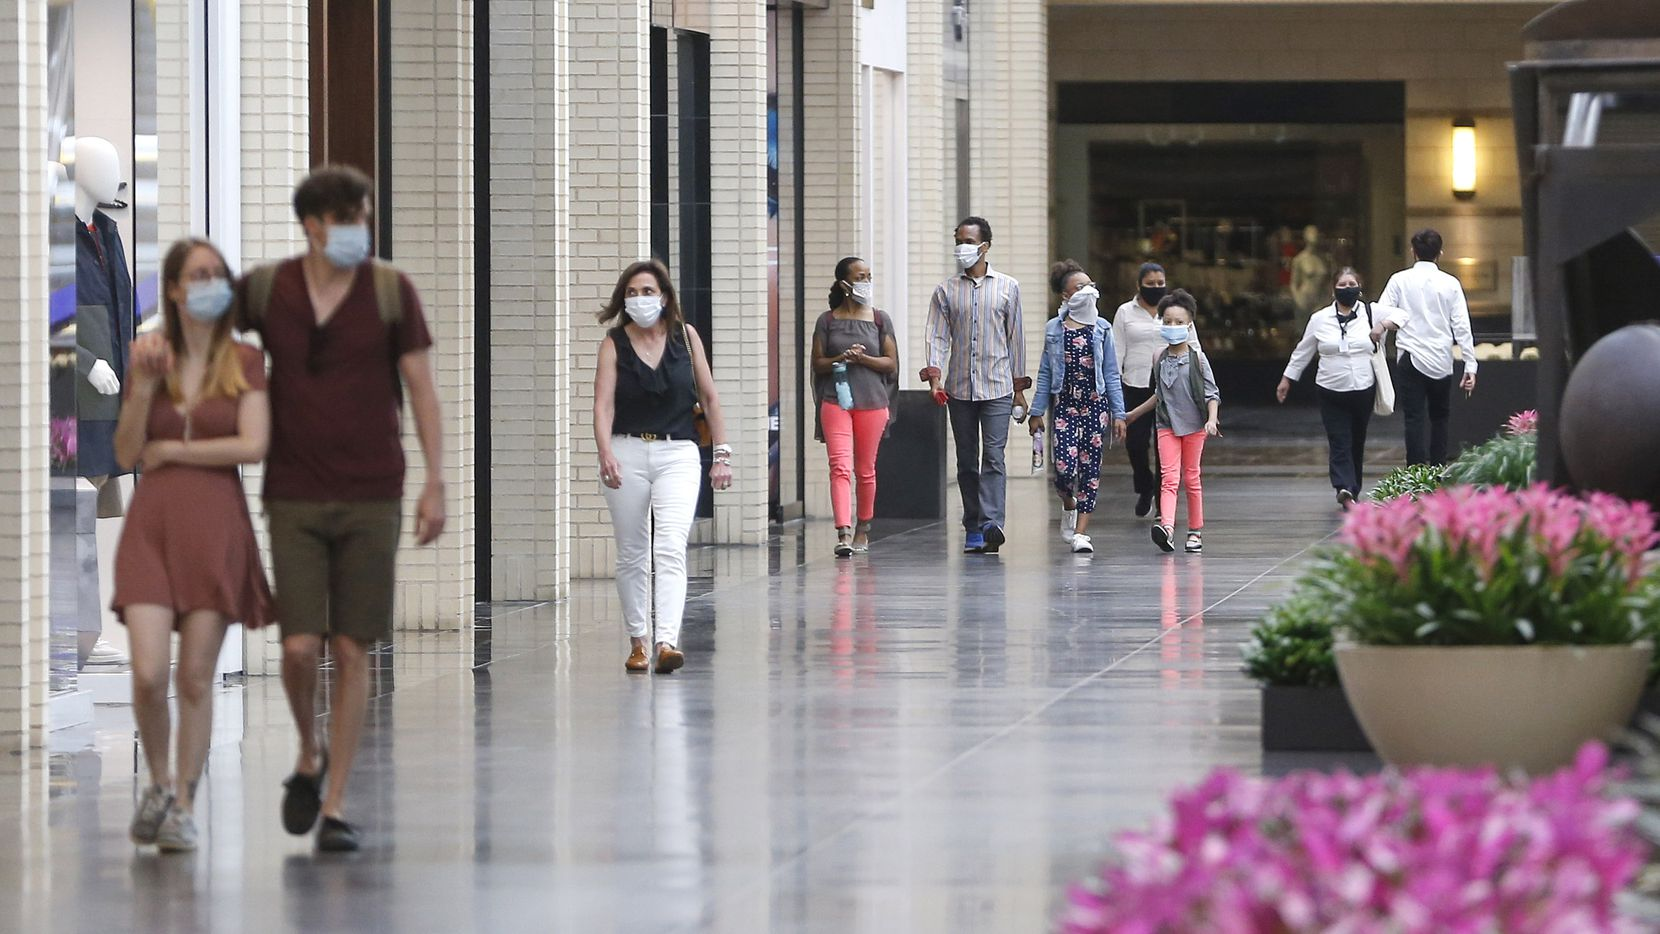 Shoppers walk through NorthPark Center mall on May 1, 2020 in Dallas. Gov. Greg Abbott's executive order requiring Texans to stay at home expired on April 30, which allowed businesses to reopen under restricted conditions.